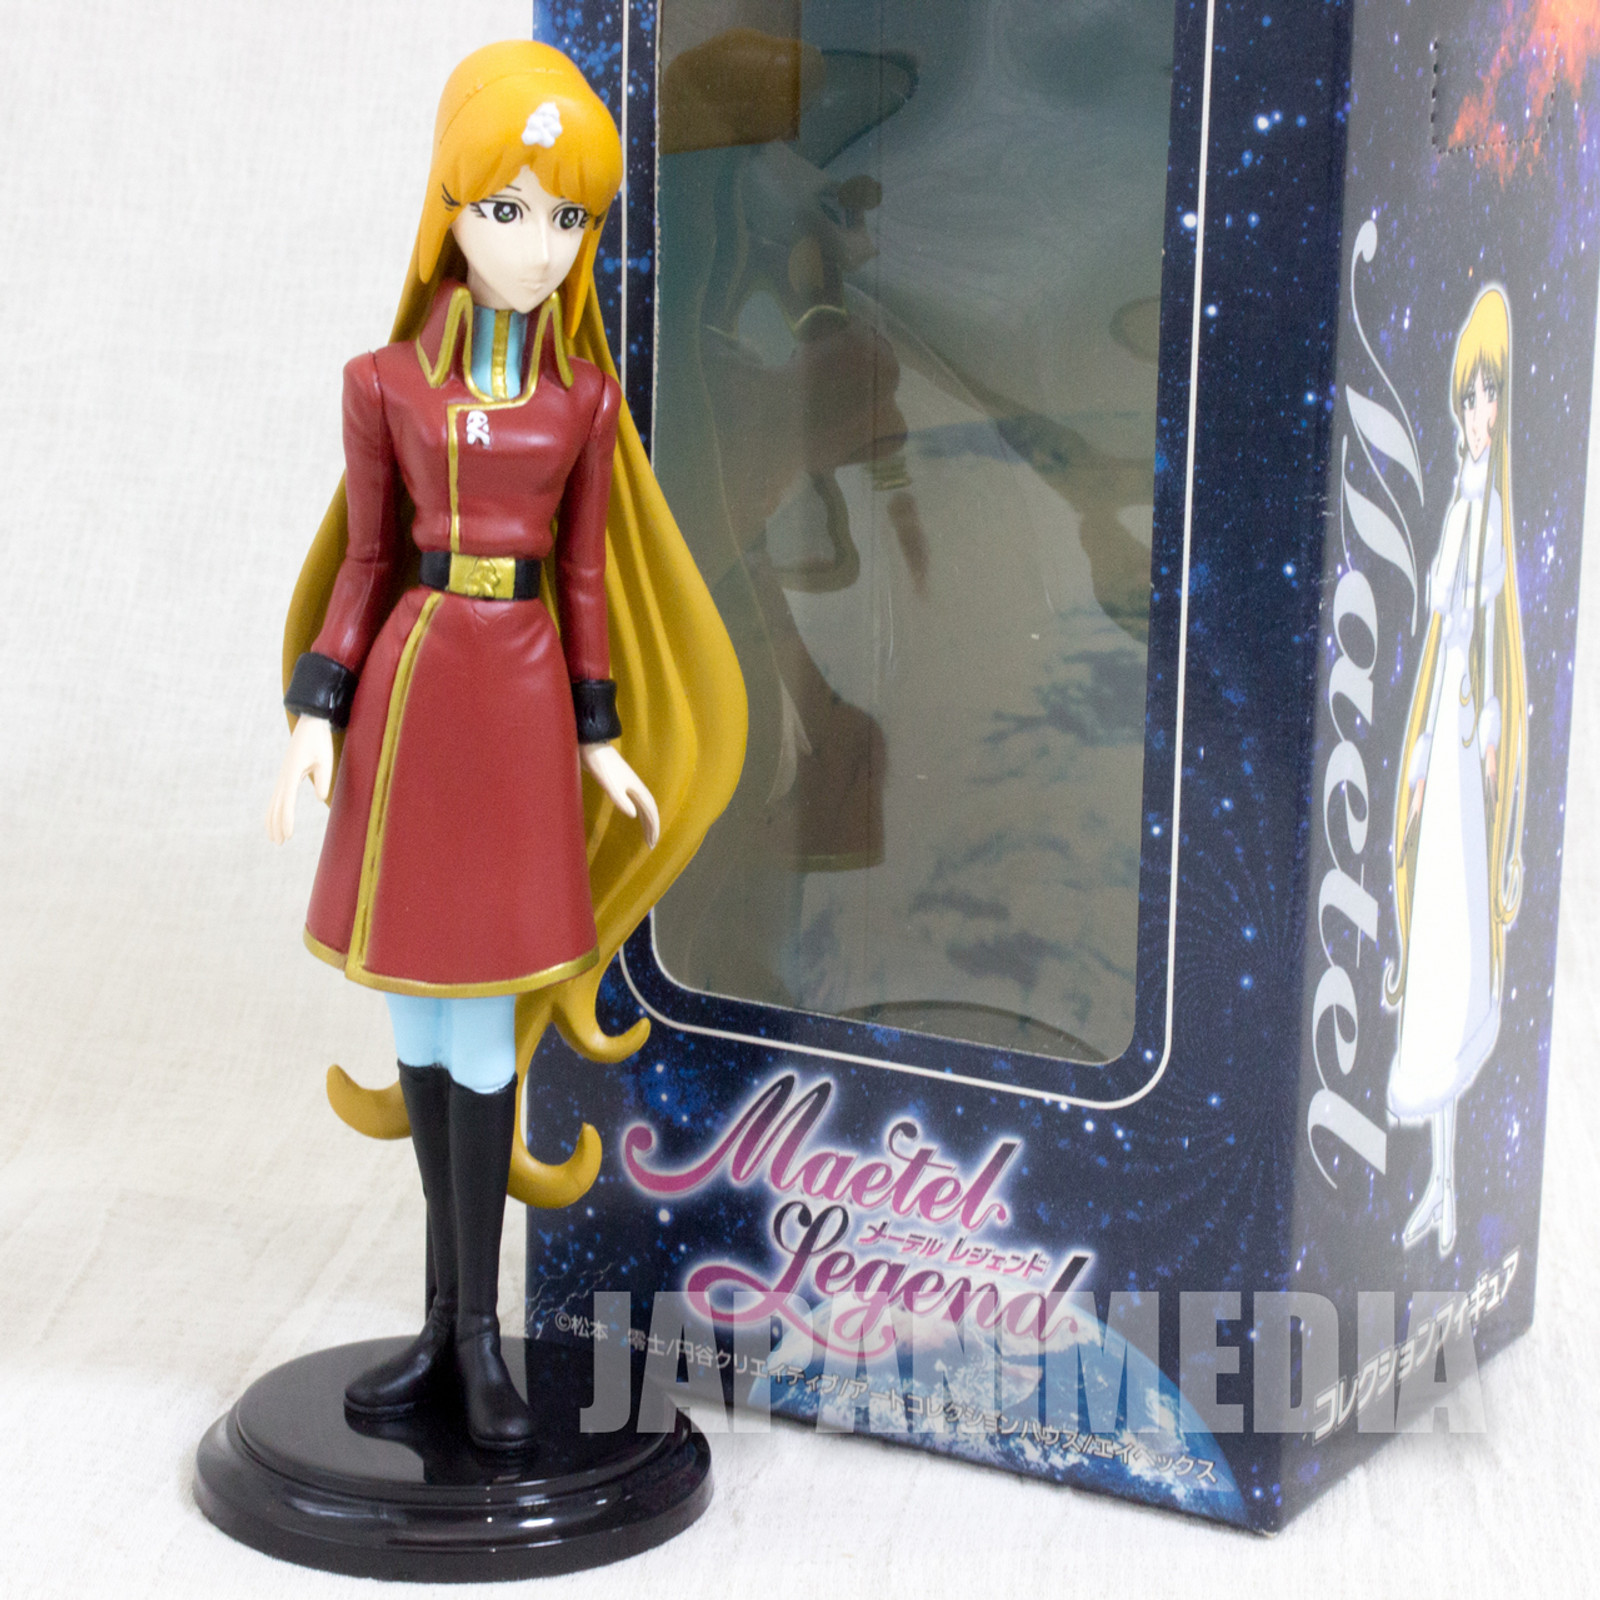 Galaxy Express 999 Queen Emeraldas Maetel Legend Collection Figure REIJI MATSUMOTO JAPAN ANIME